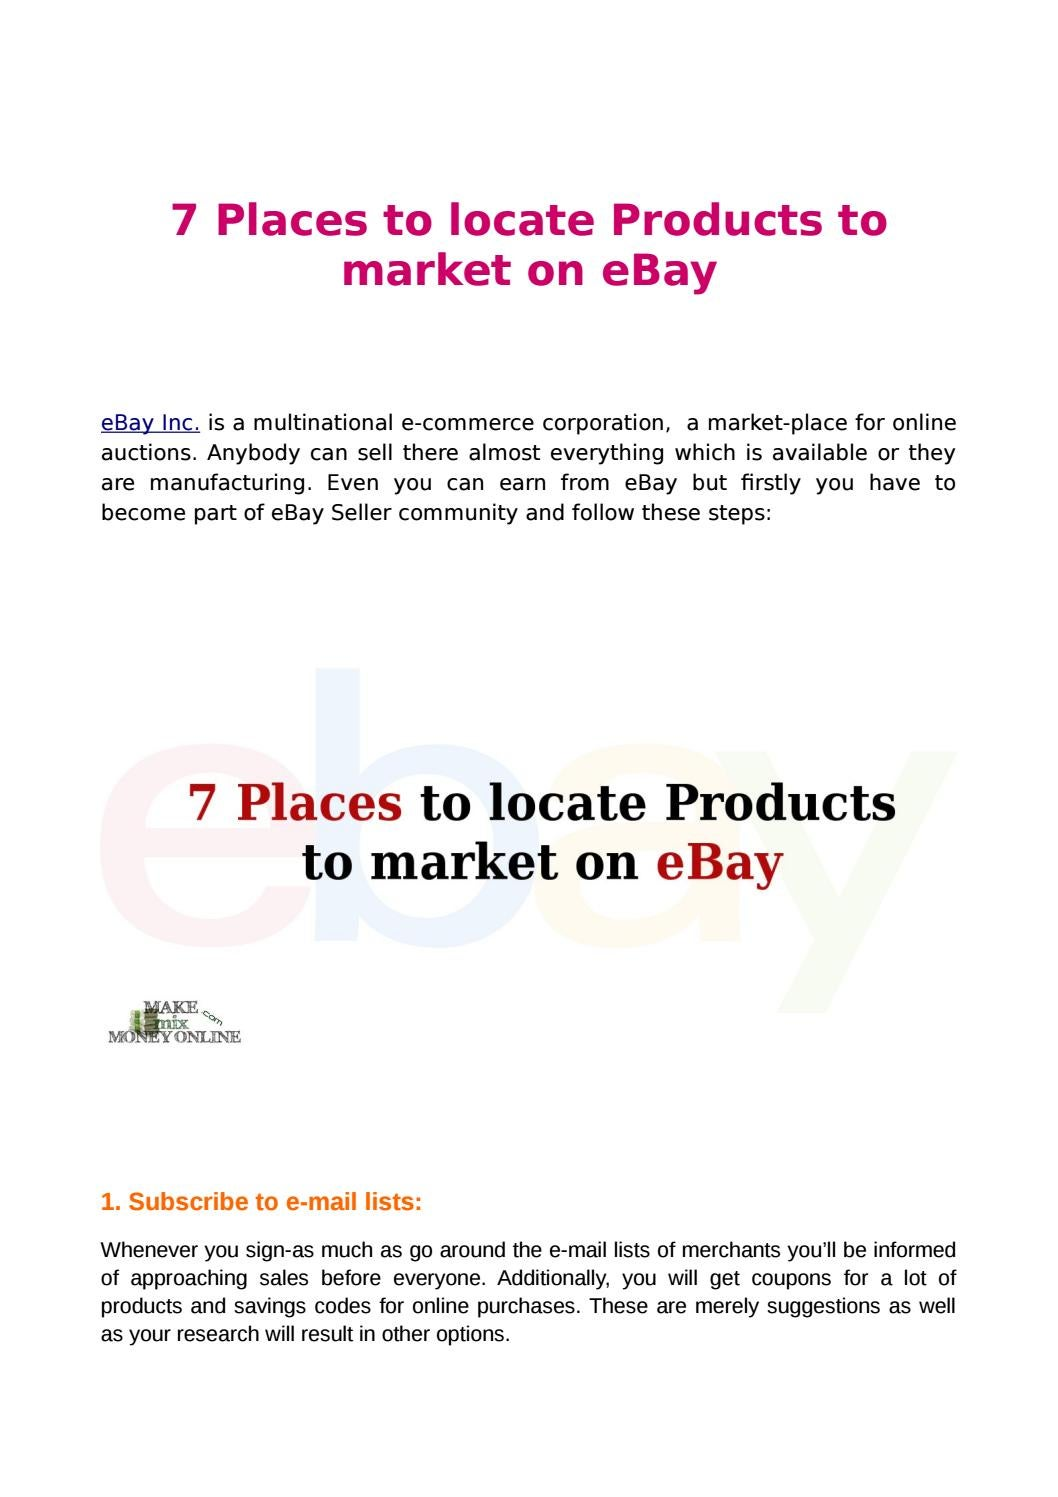 7 places to locate products to market on ebay